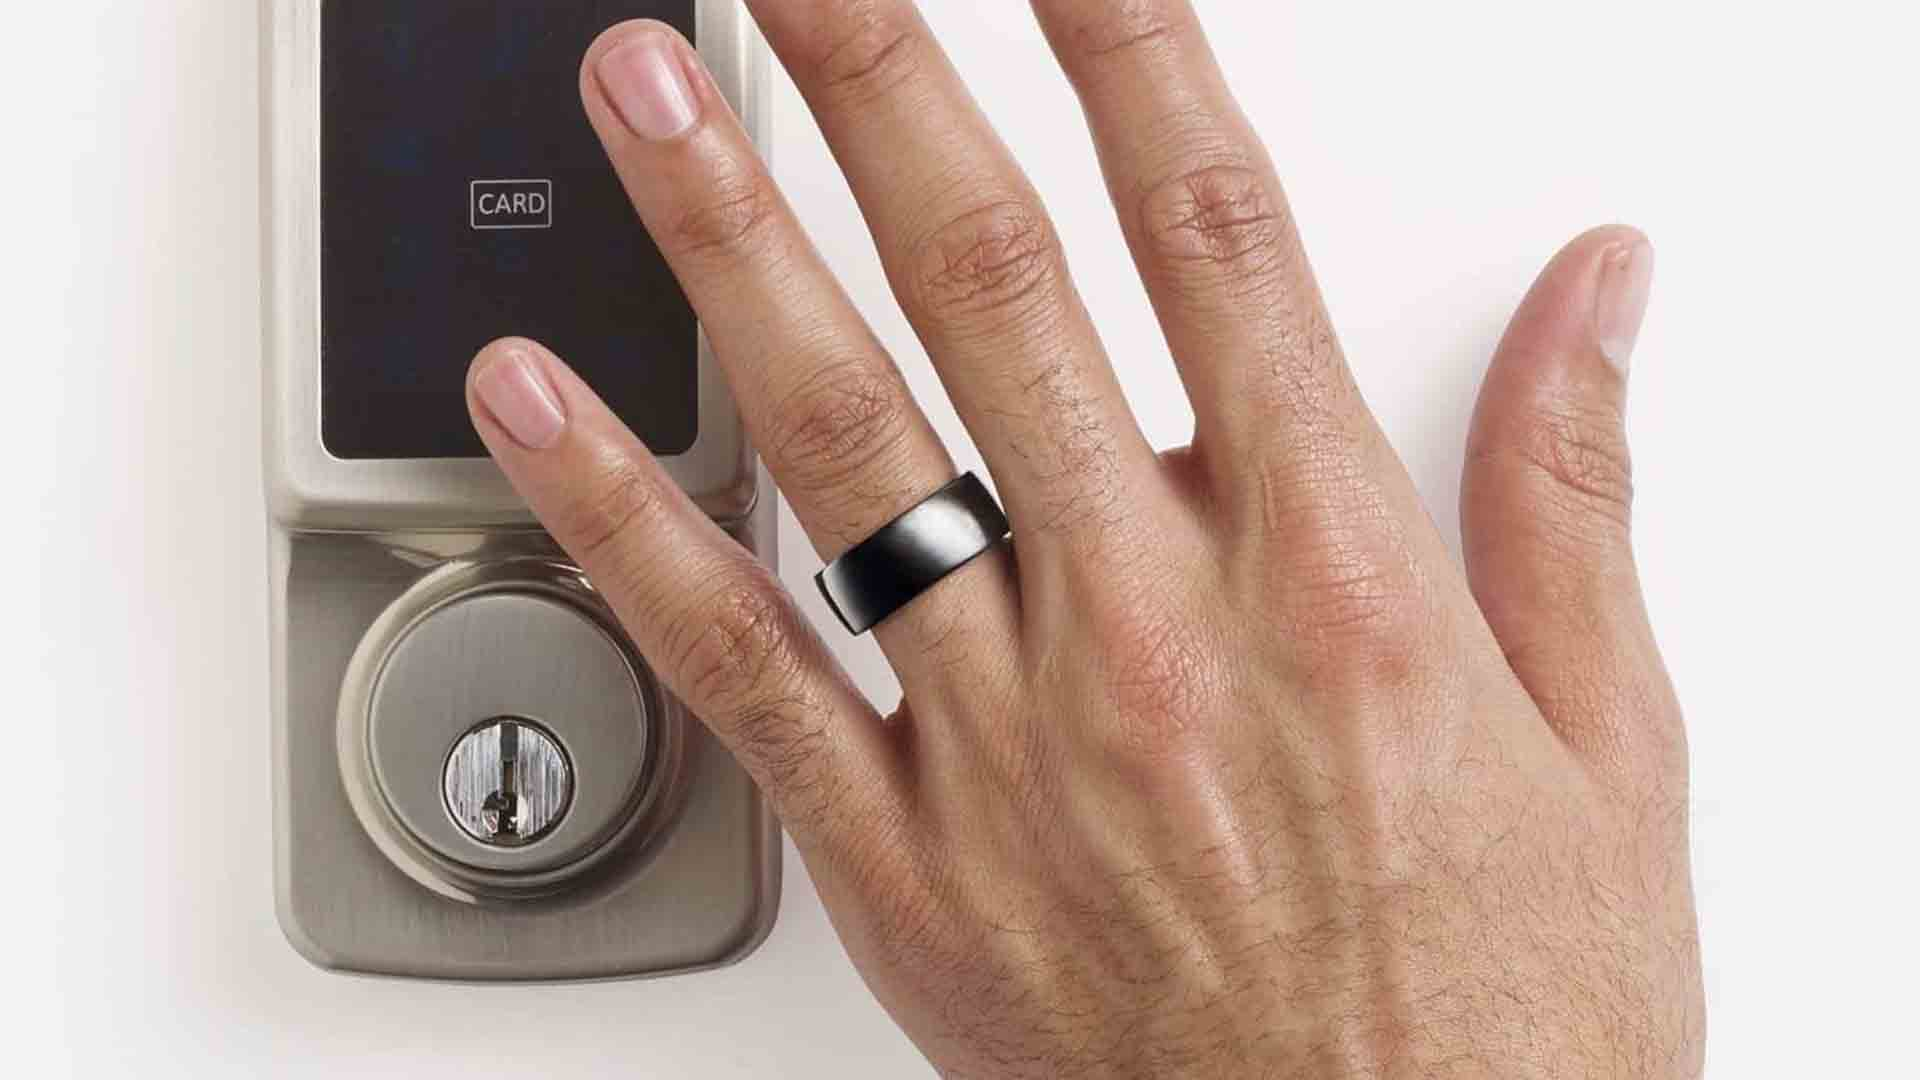 NFC Ring as a Smart Key